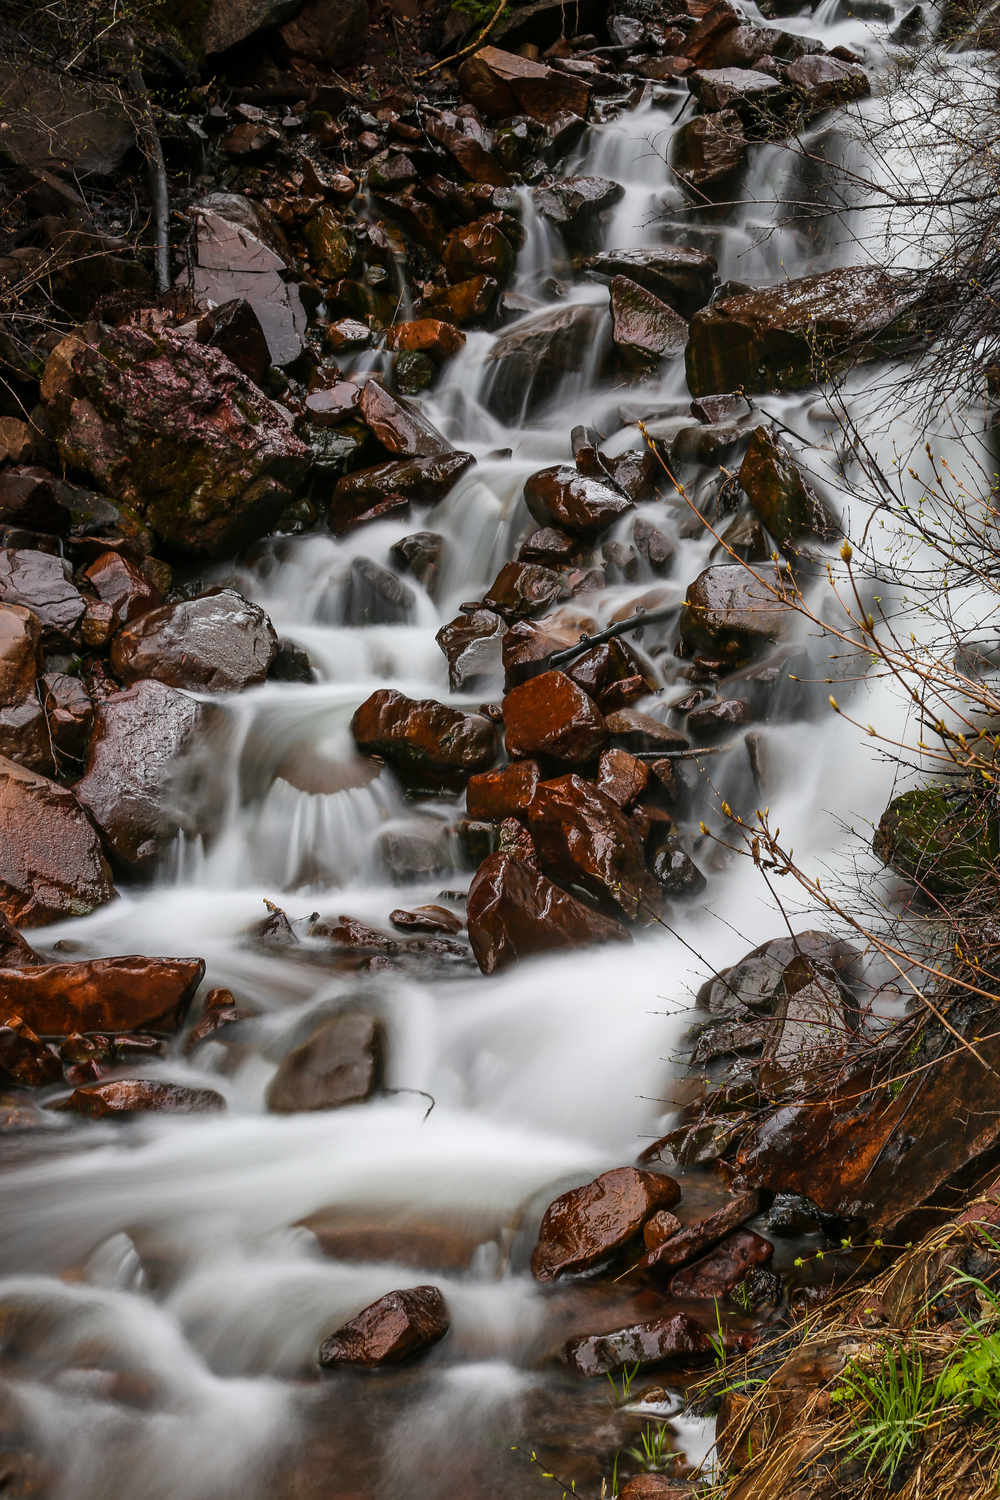 Falls in Park City, Utah. Shot with 50mm lens on a Canon 5D, with a neutral density filter and polarizer. ISO 100, f/13, Shutterspeed 2.0 secs.